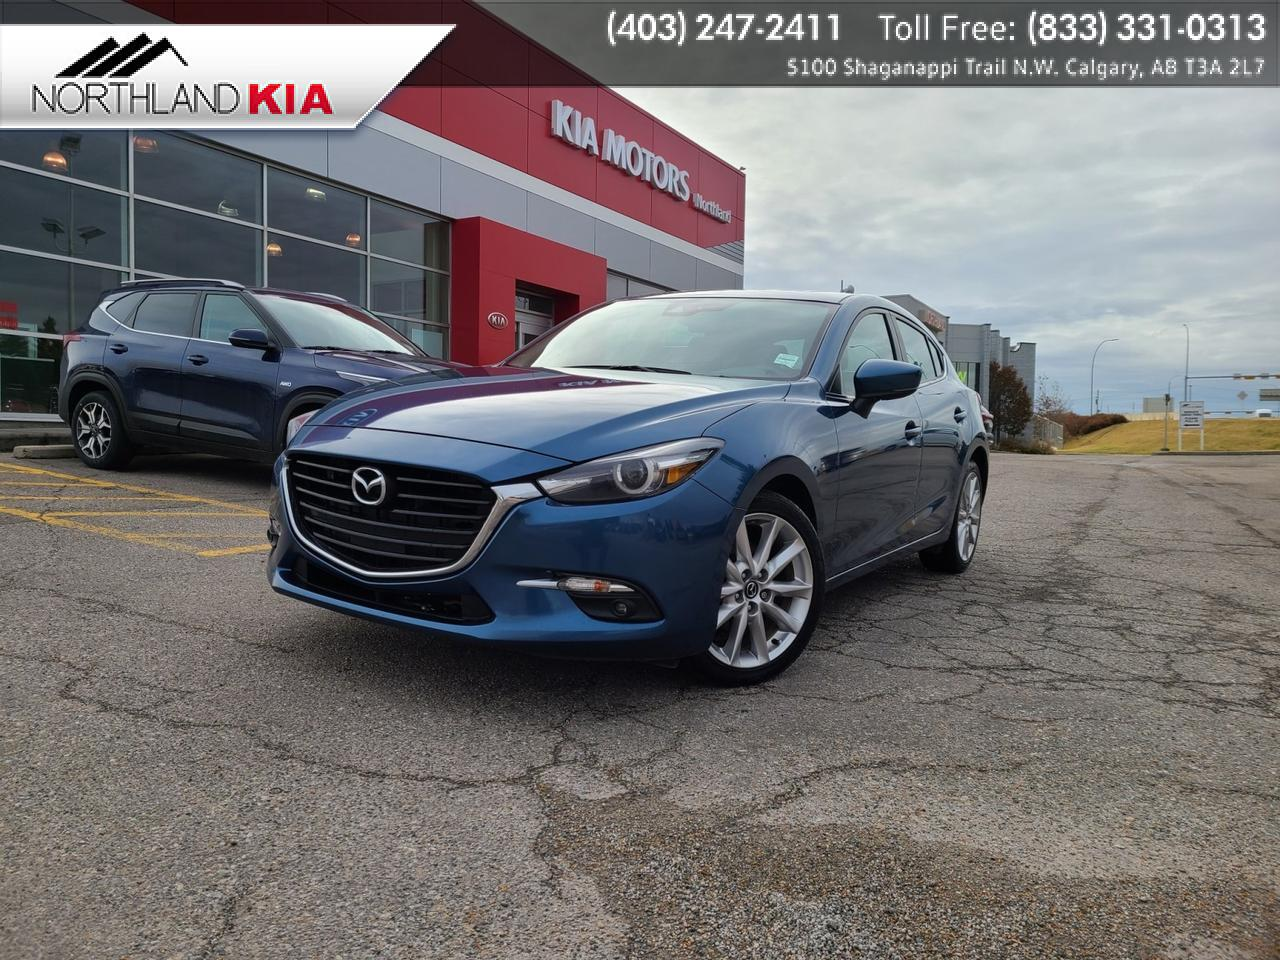 2018 Mazda Mazda3 Sport GT HEATED SEATS/STEERING WHEEL, BACKUP CAMERA, SUNROOF Calgary AB